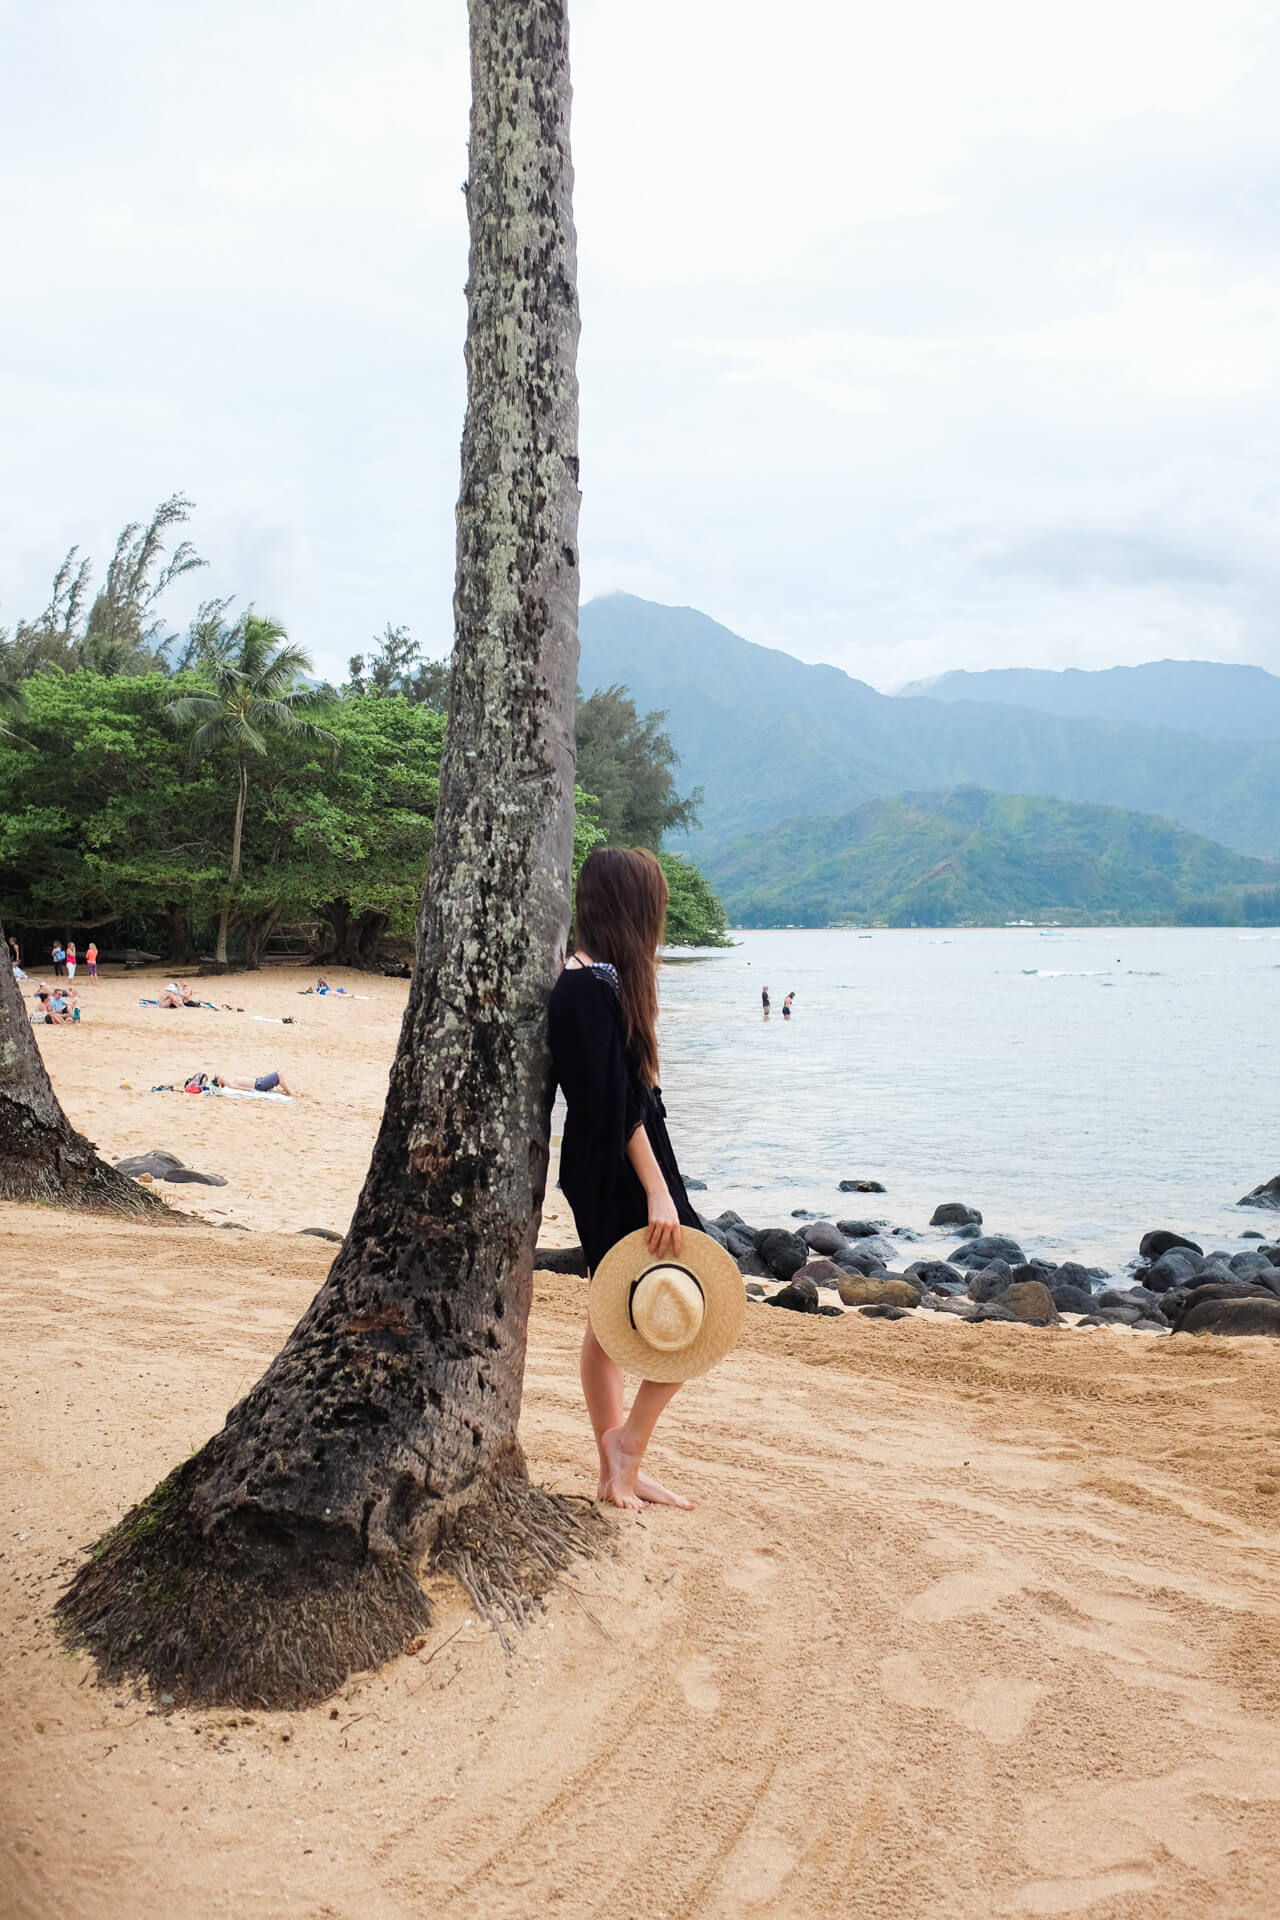 hotel recommendations for kauai - M Loves M